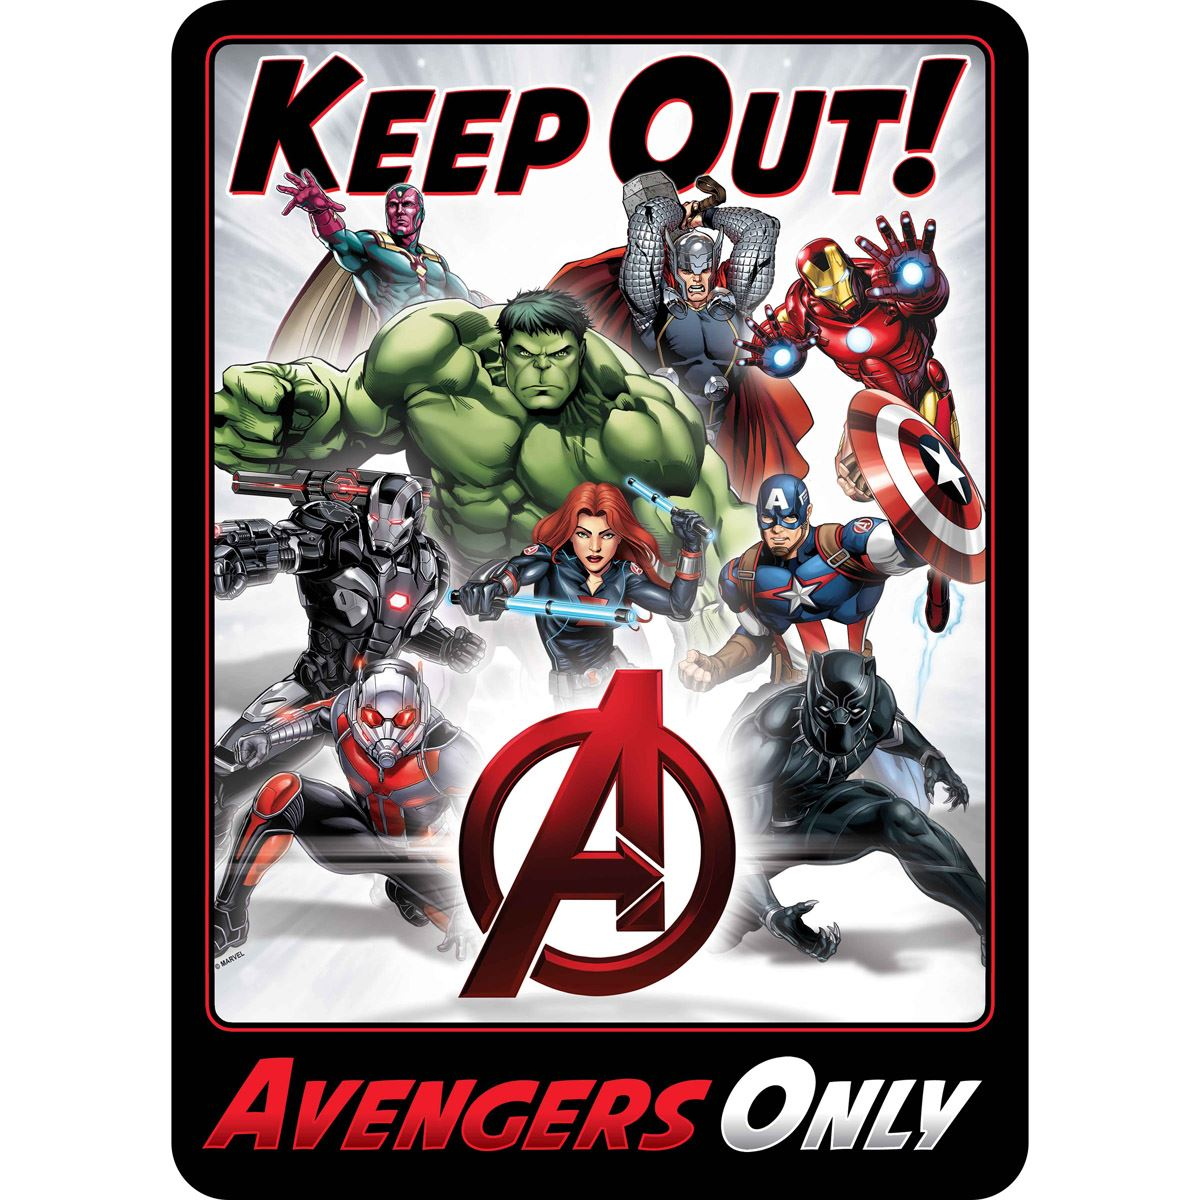 Placa de adorno kepp out avengers  - Sanborns